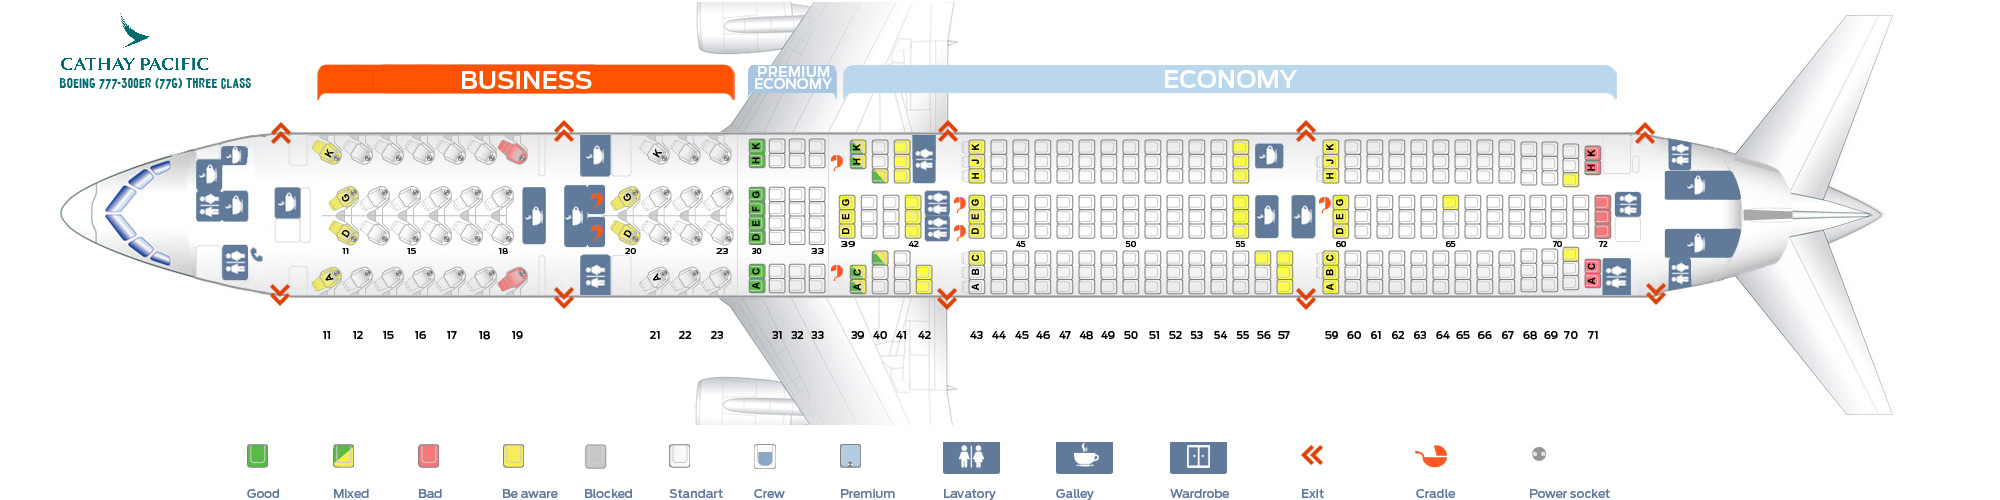 Seat Map Boeing 777-300ER Three class Cathay Pacific